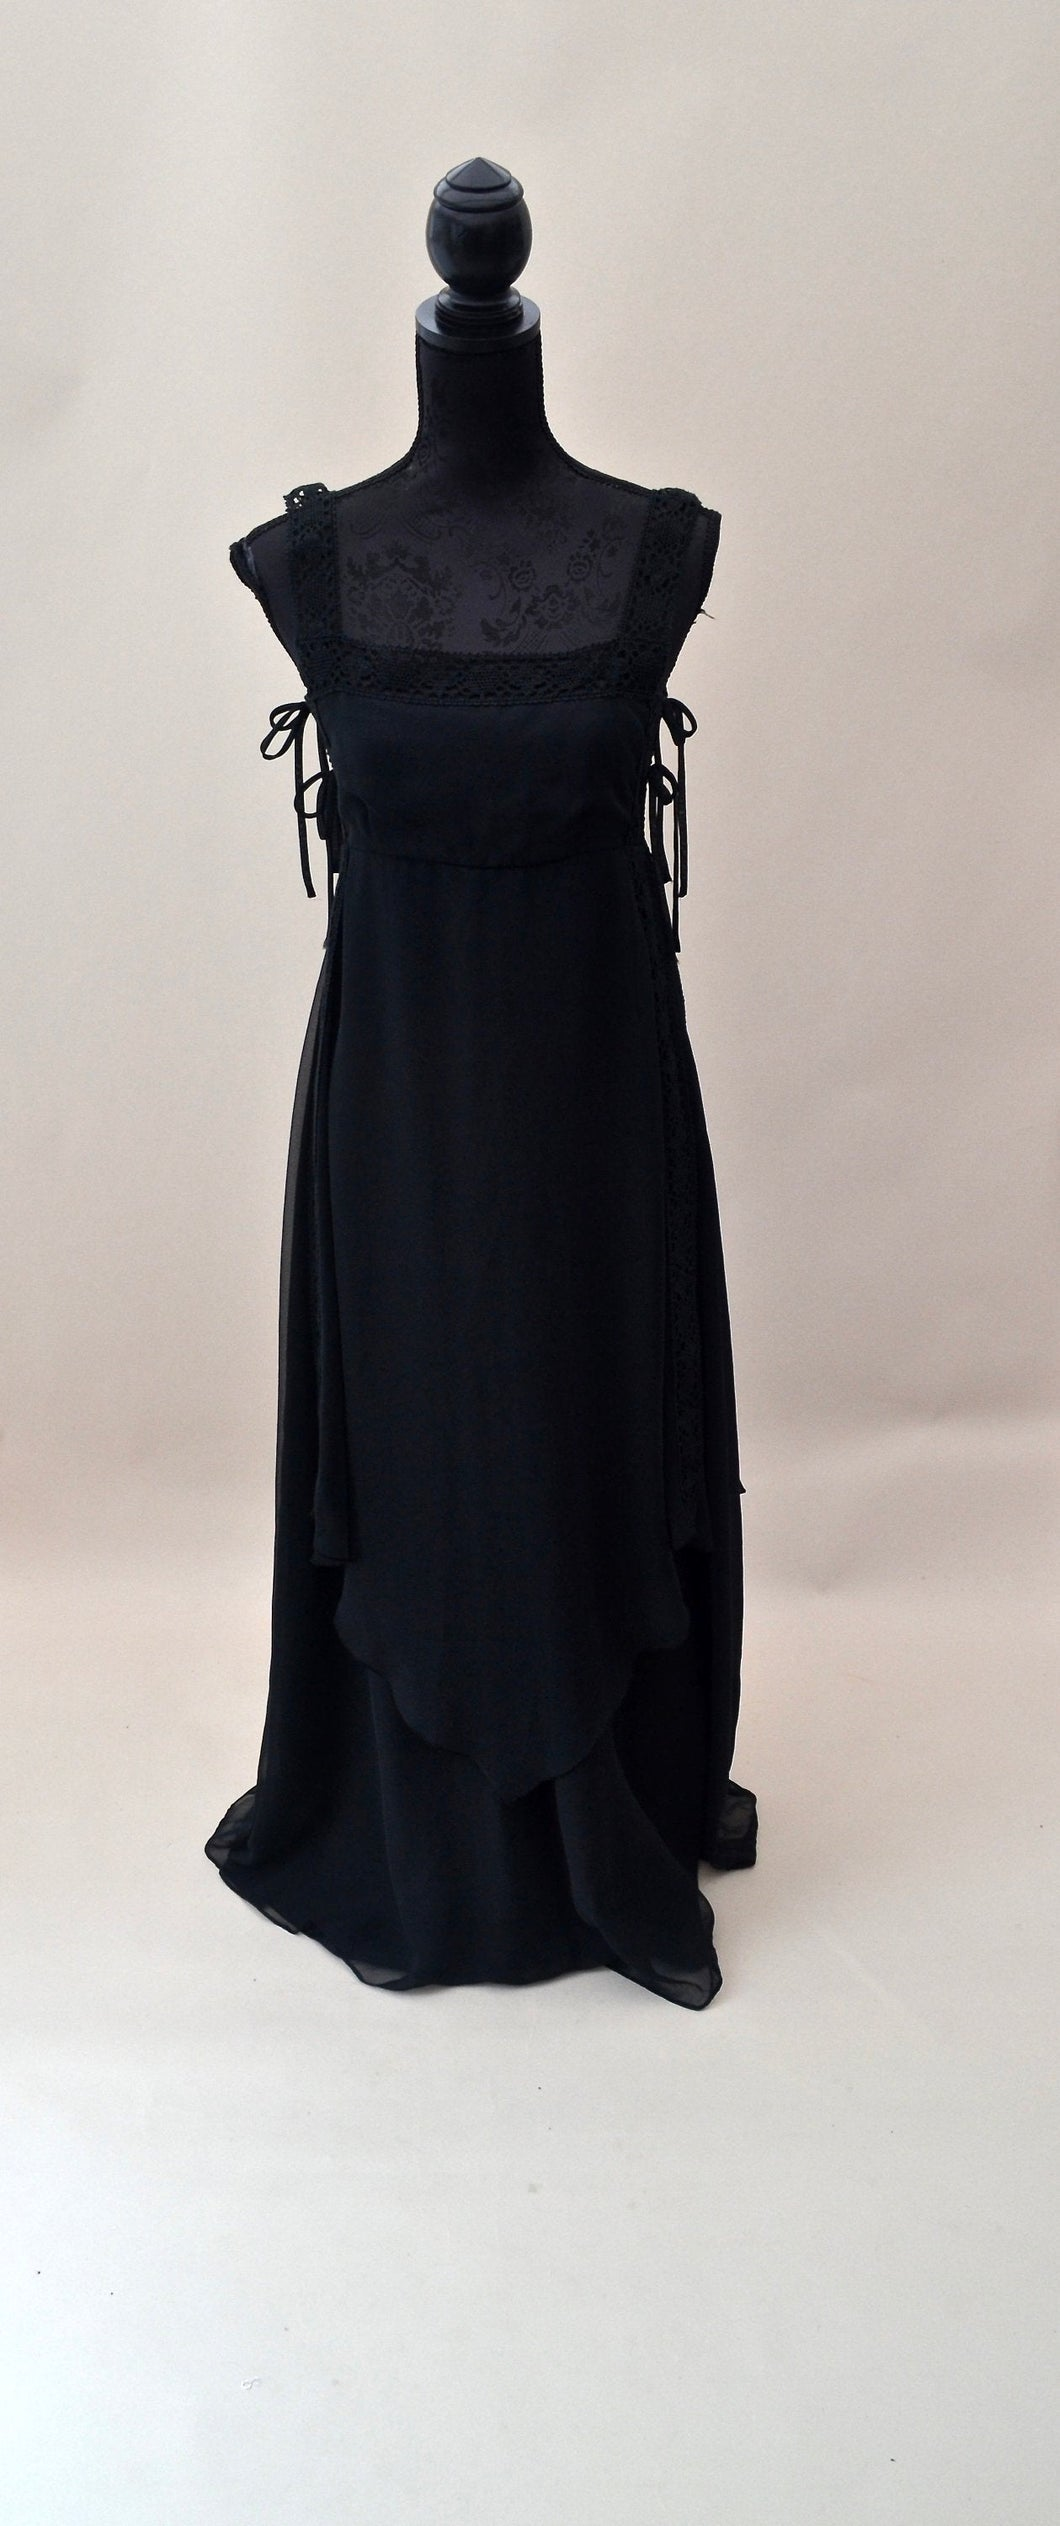 1970s Long black bib dress with side ties, Est UK size 8